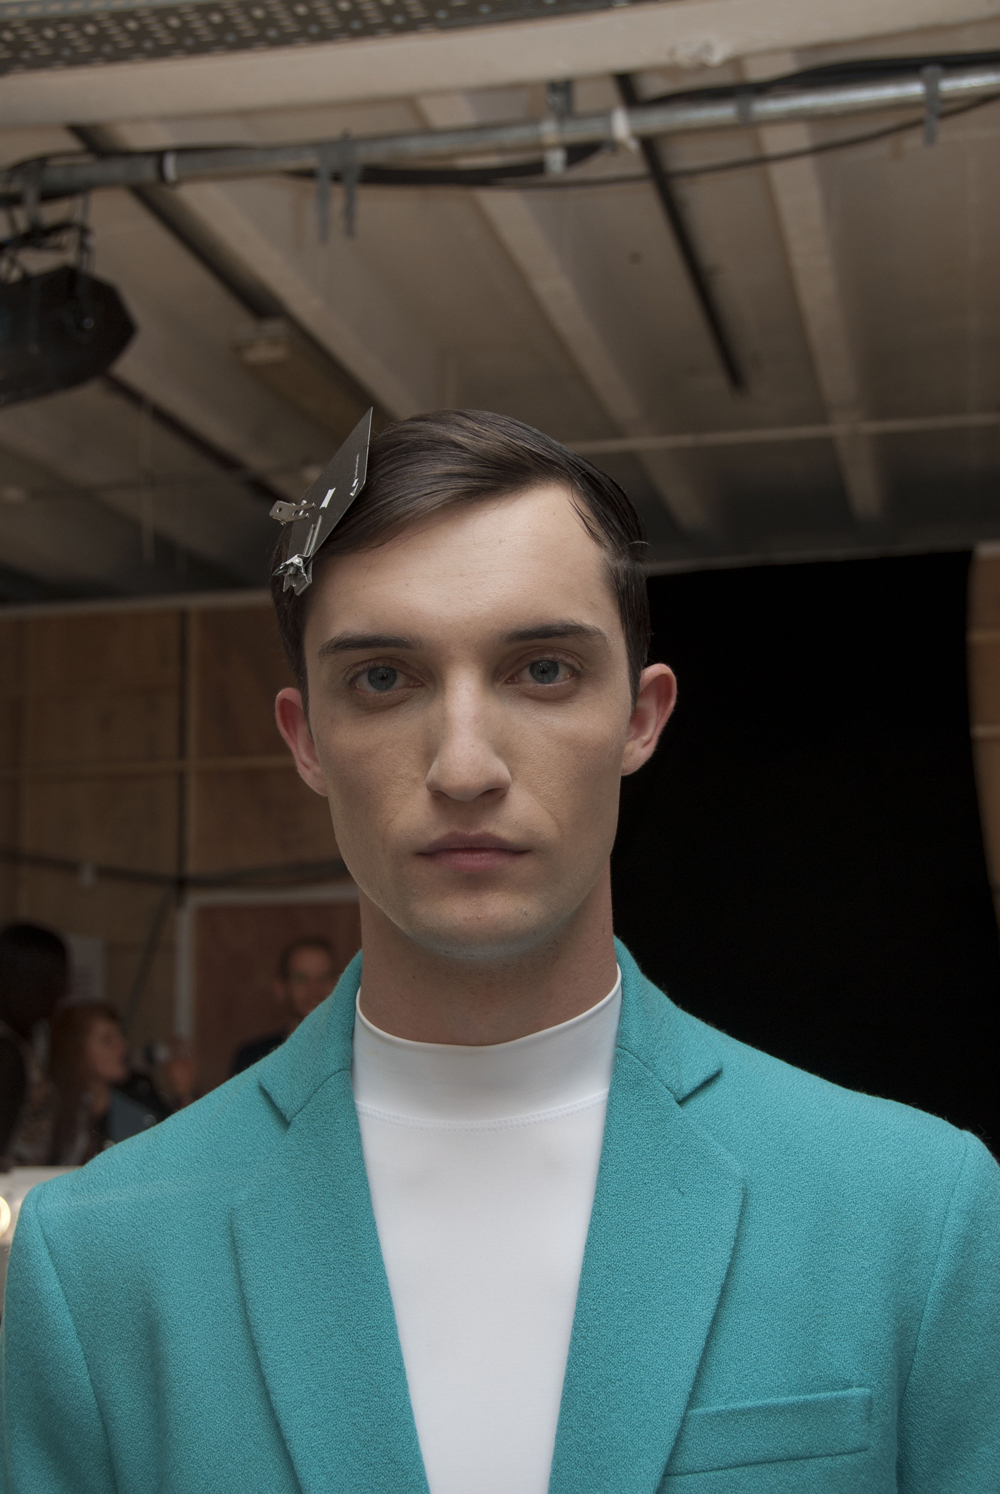 agiandsam-SS14-backstage-18